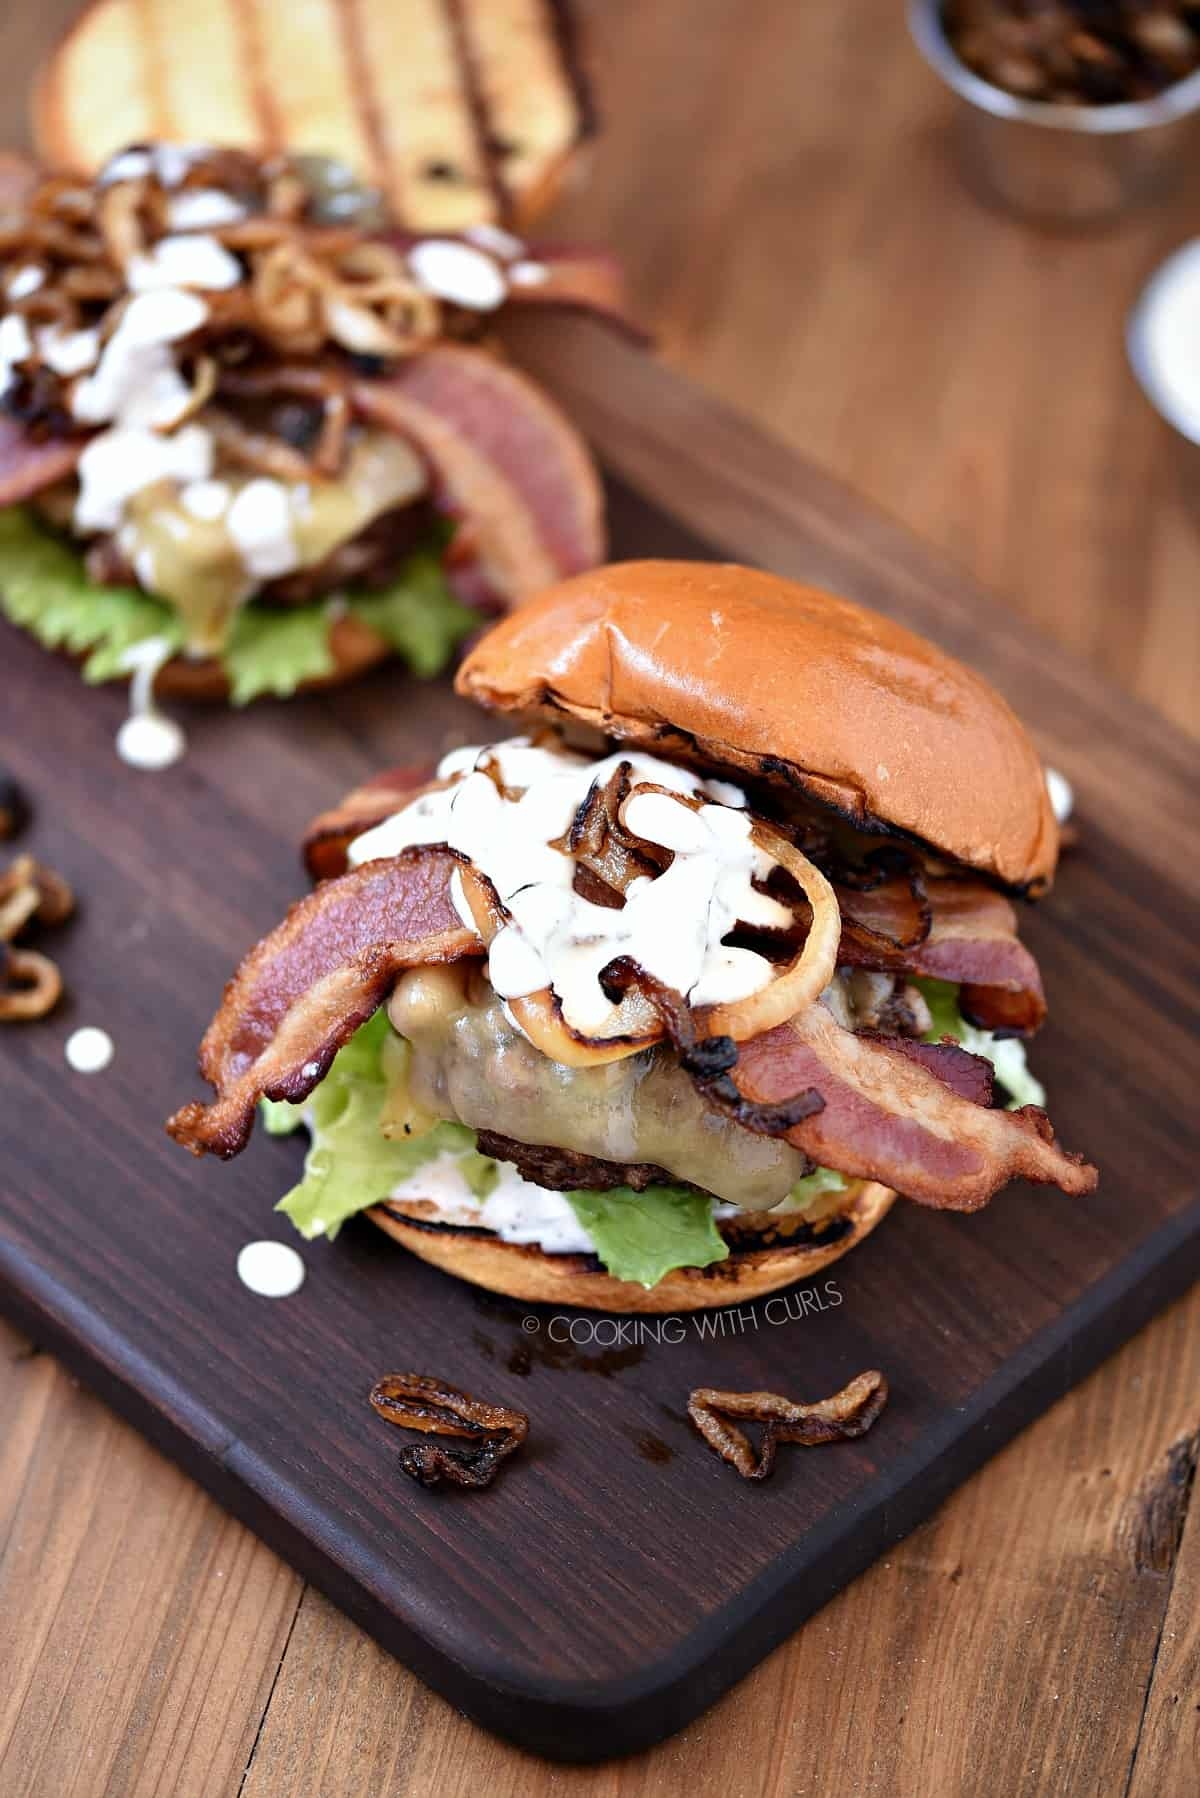 Looking down on two Grilled Double Bacon Burgers topped with caramelized onions and white barbecue sauce sitting on a wood board.